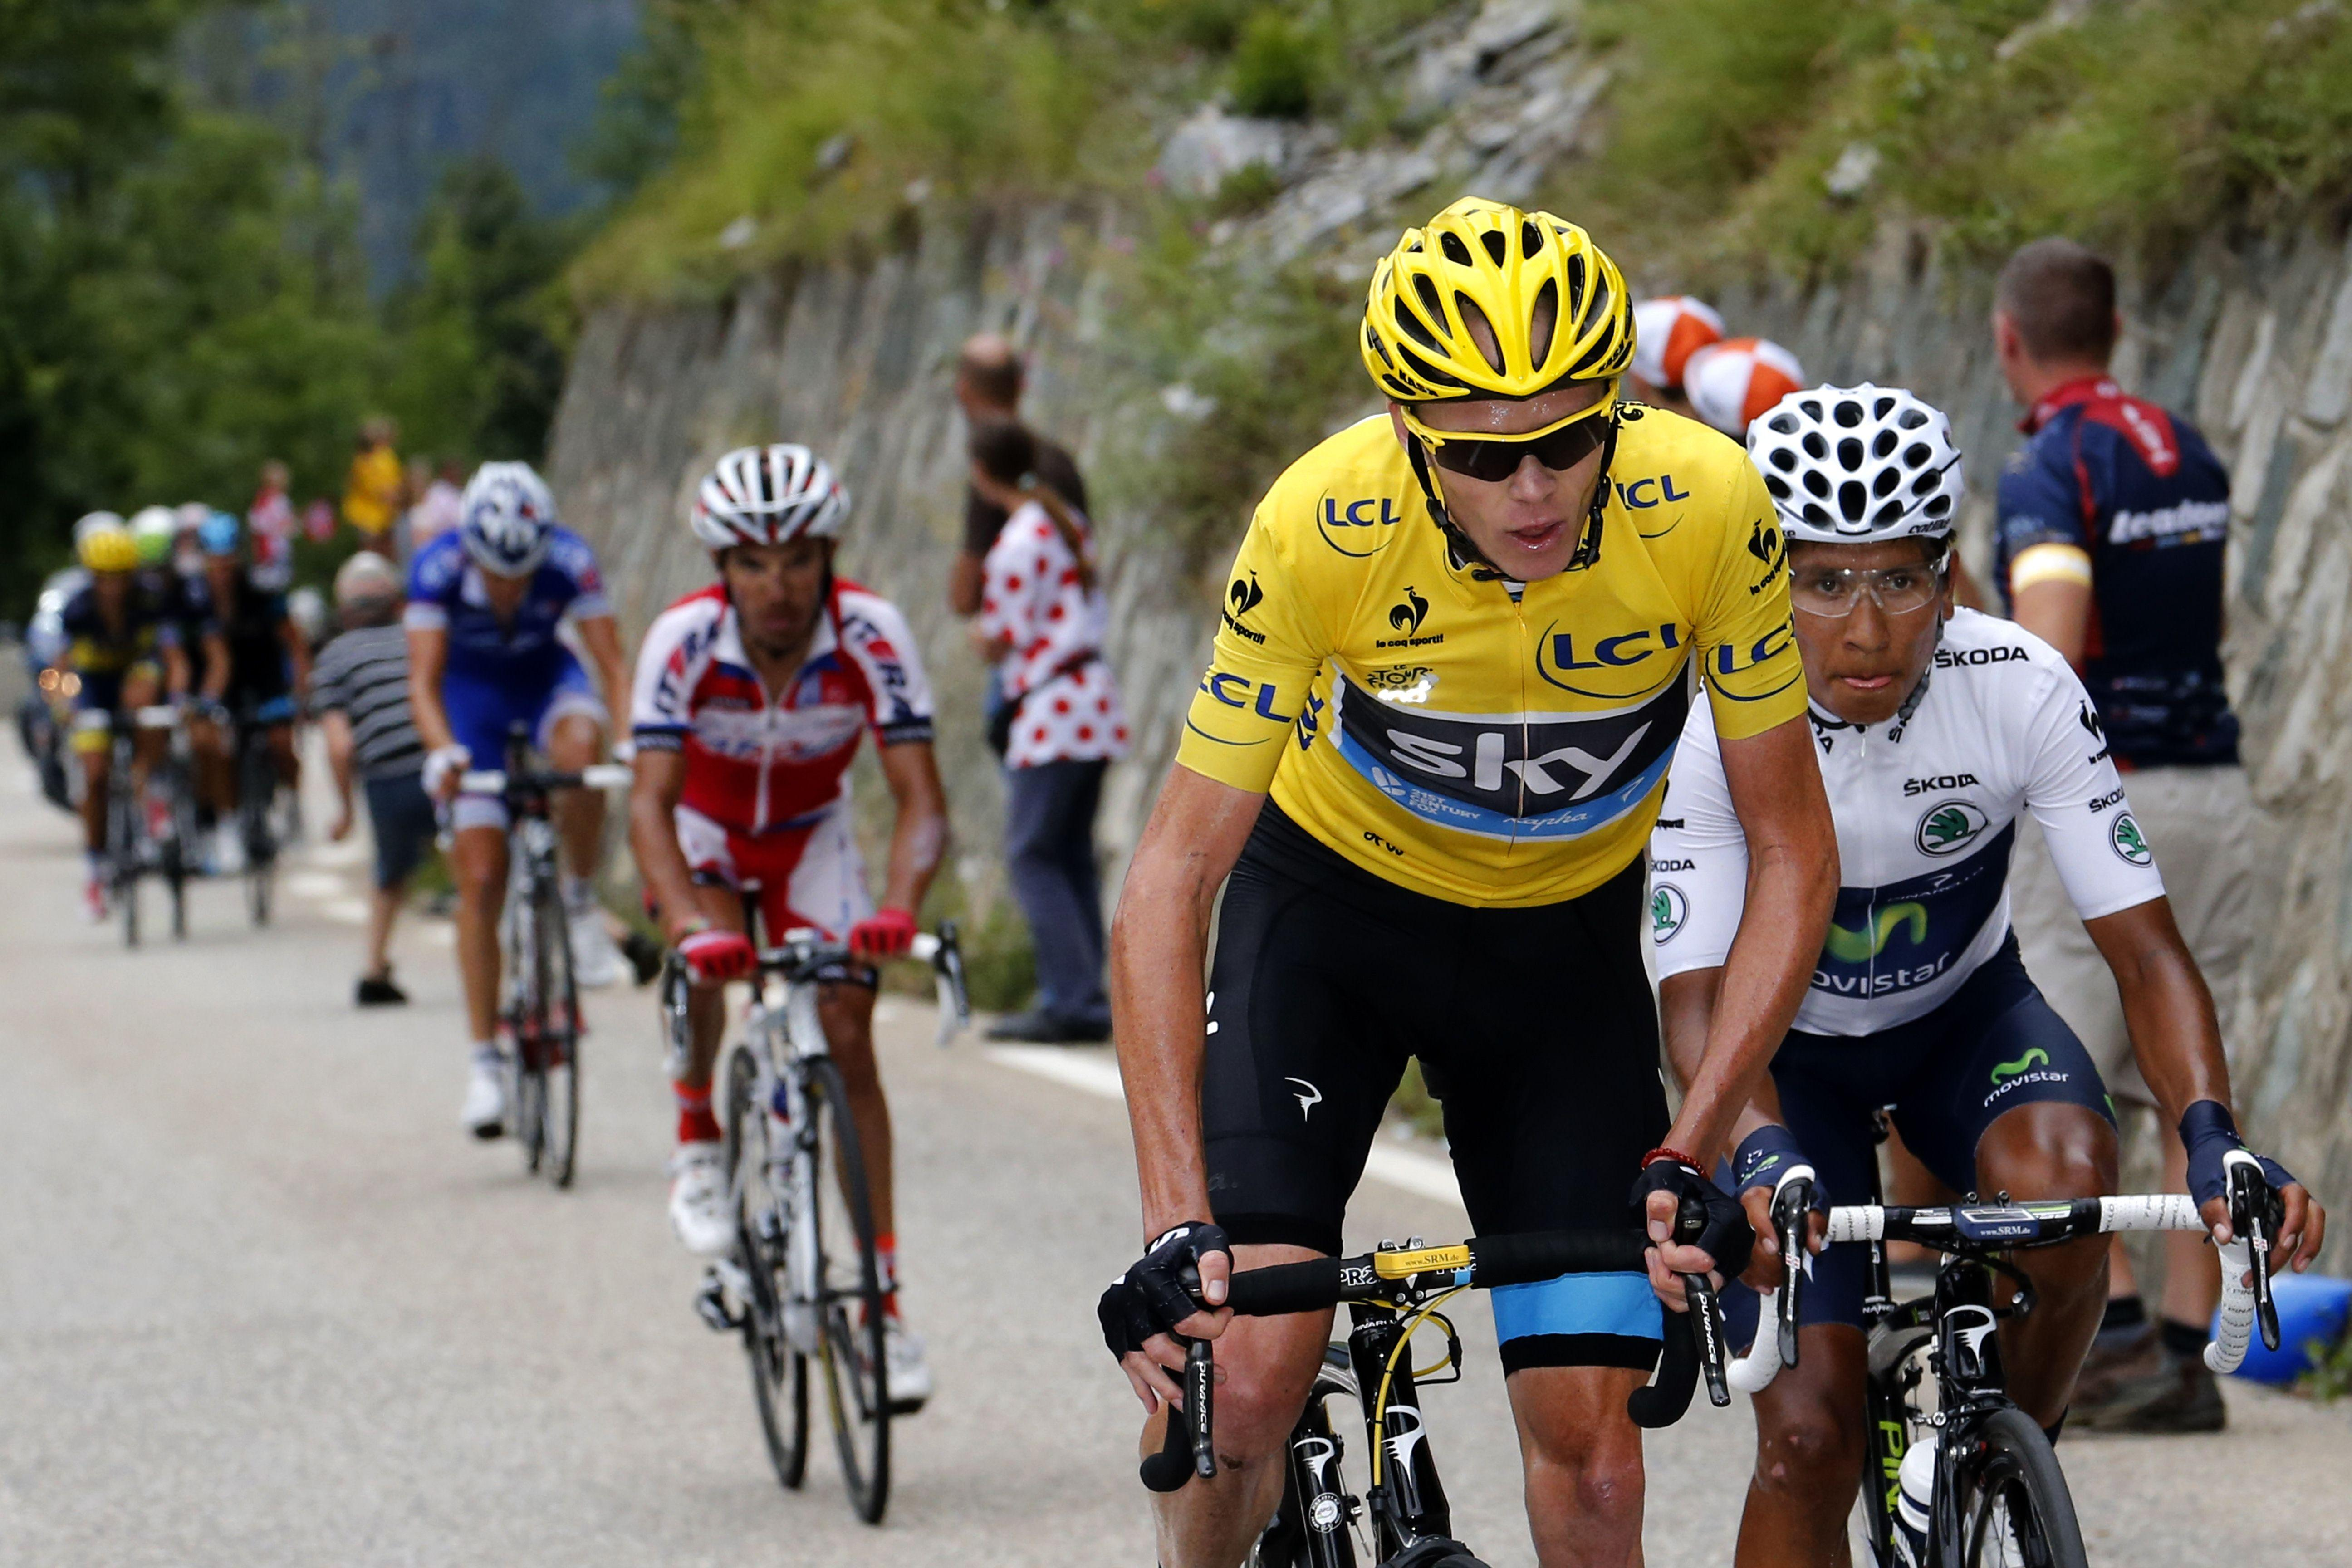 Chris Froome attacks Nairo Quintana on Alpe d'Huez at the 2013 Tour